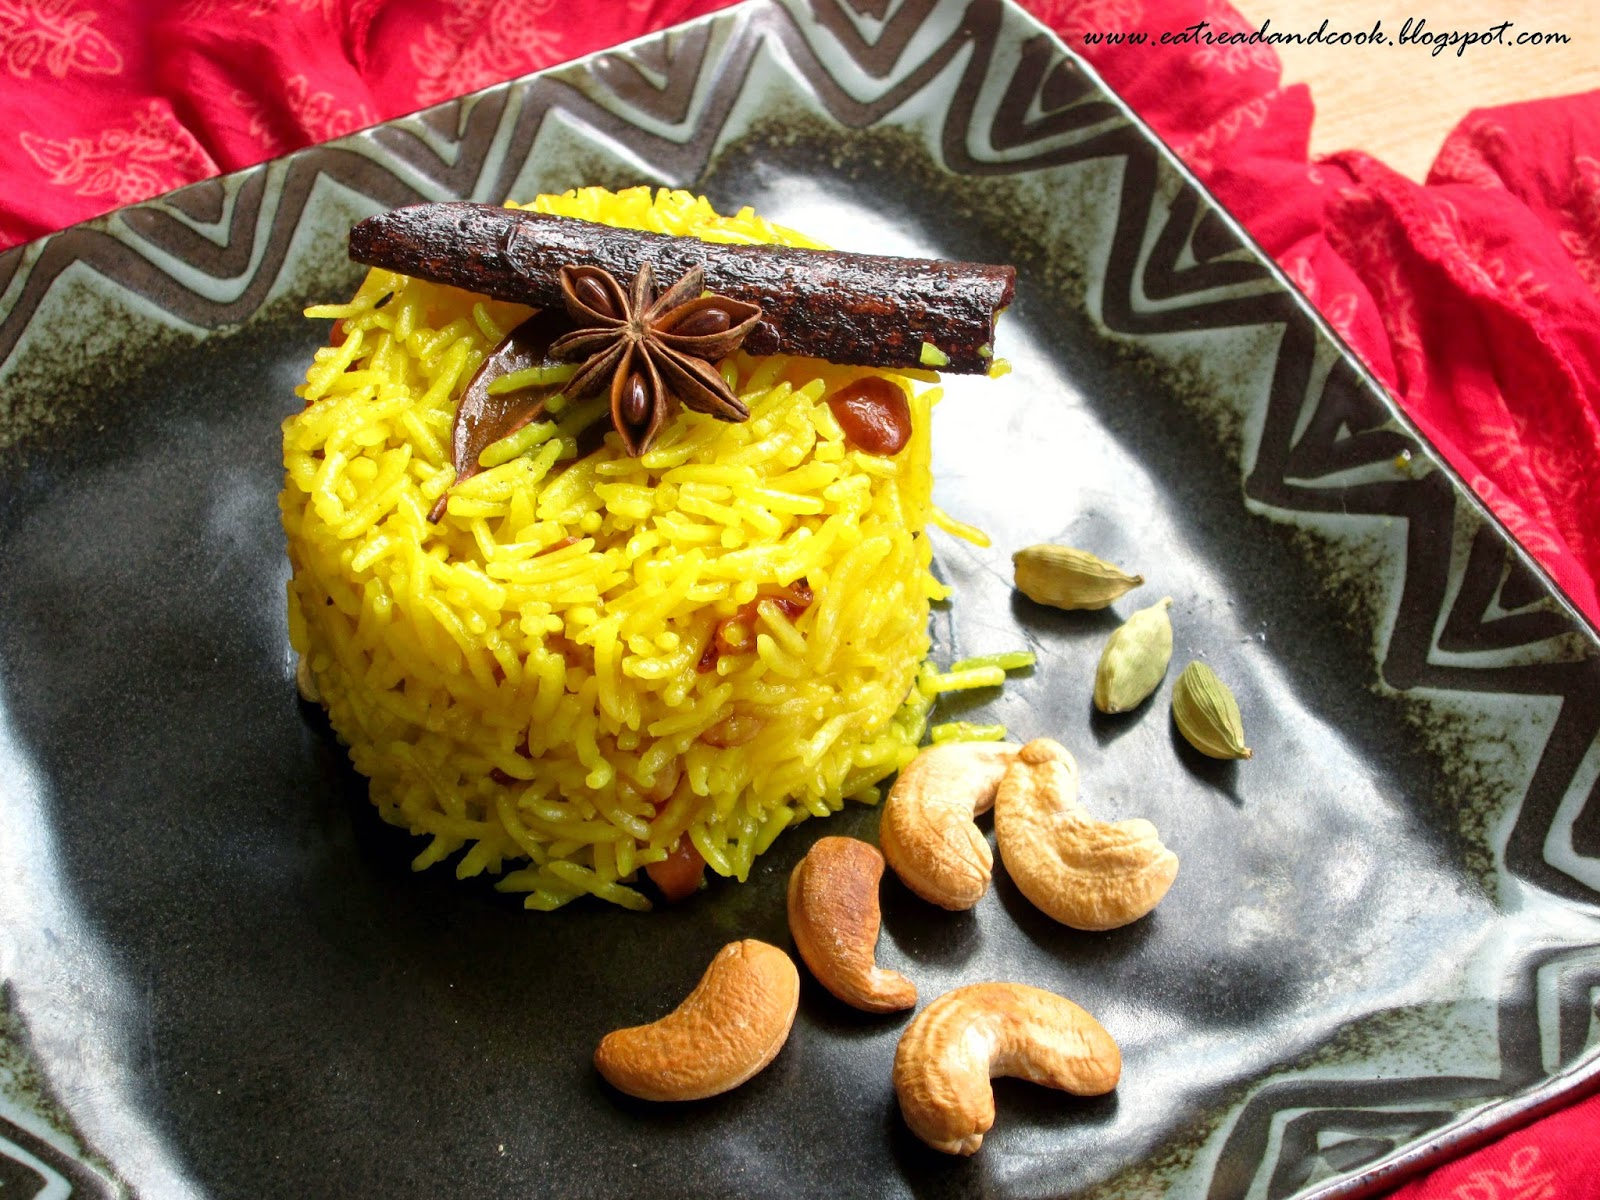 holud pulao recipe bengali yellow sweet pulao recipe